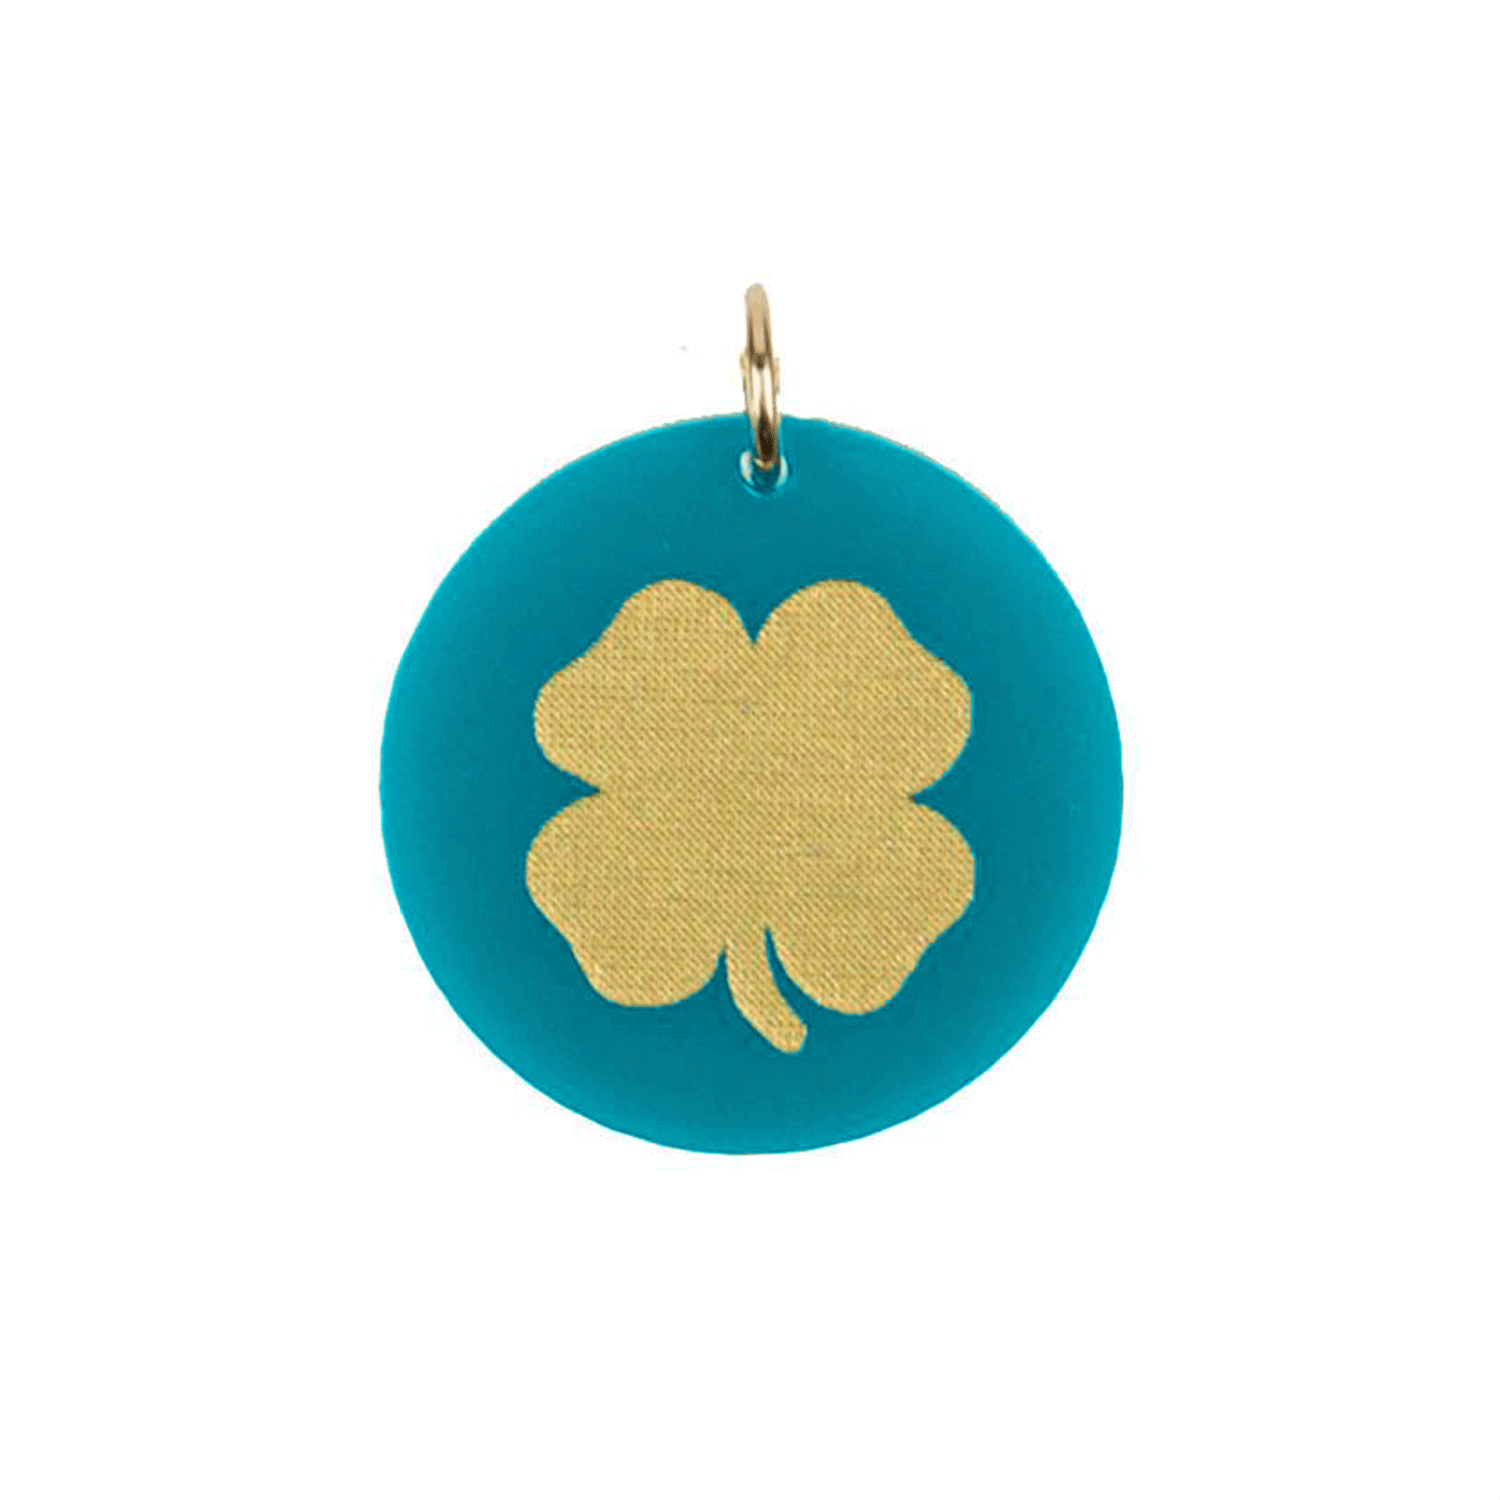 Moon and Lola - Acrylic Eden Charm lucky clover charm on turquoise acrylic